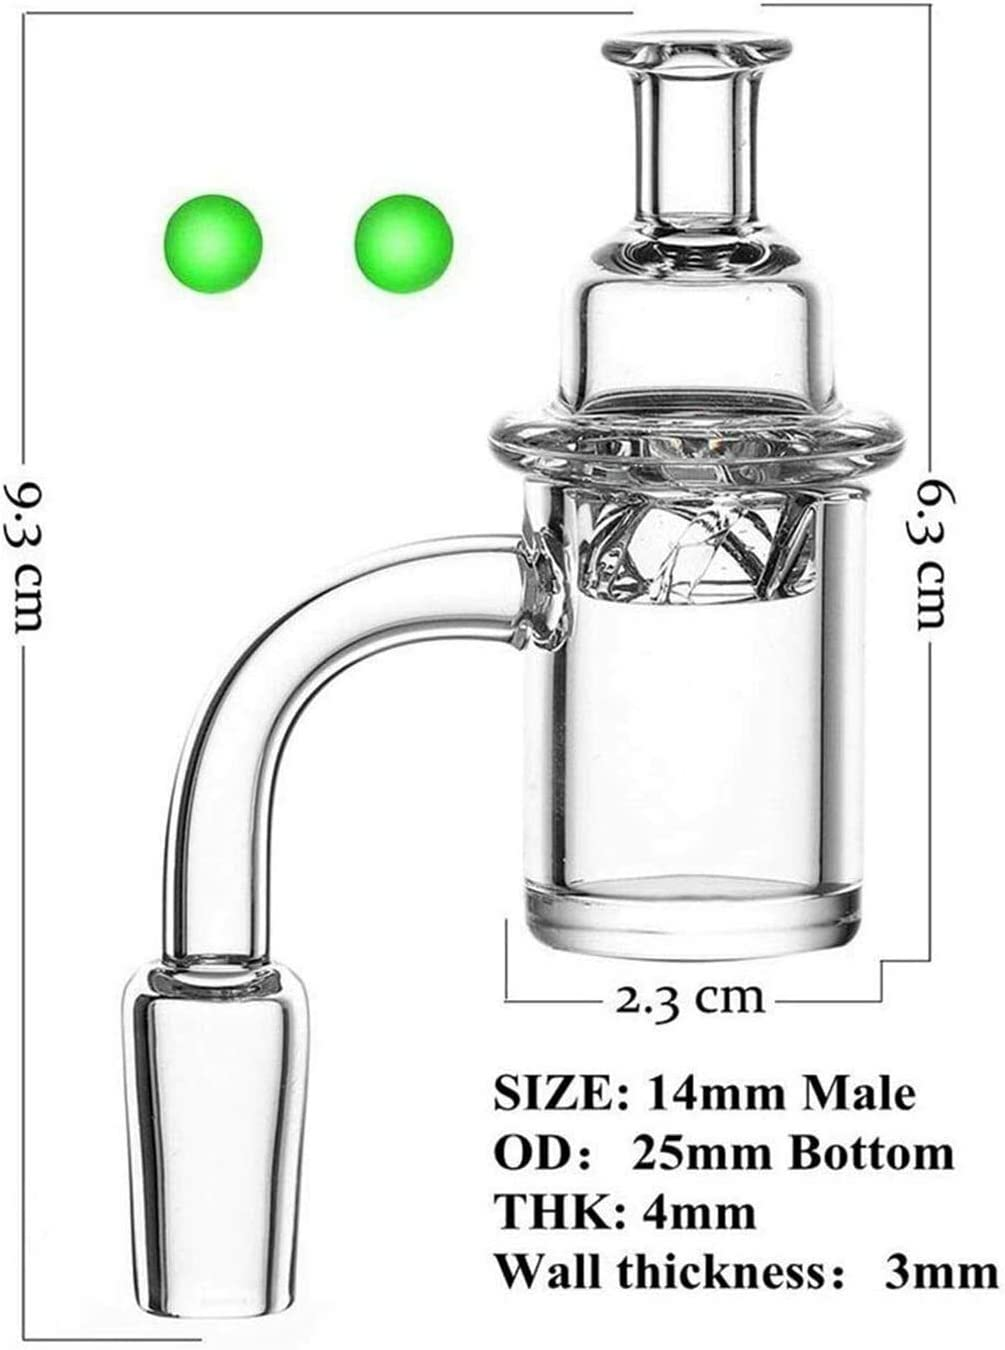 RUIKI 2PCS 14mm Male Quartz 90 Degree 25mm Wide with Quartz Glow Ball Glass Collector Transparent and white bottom